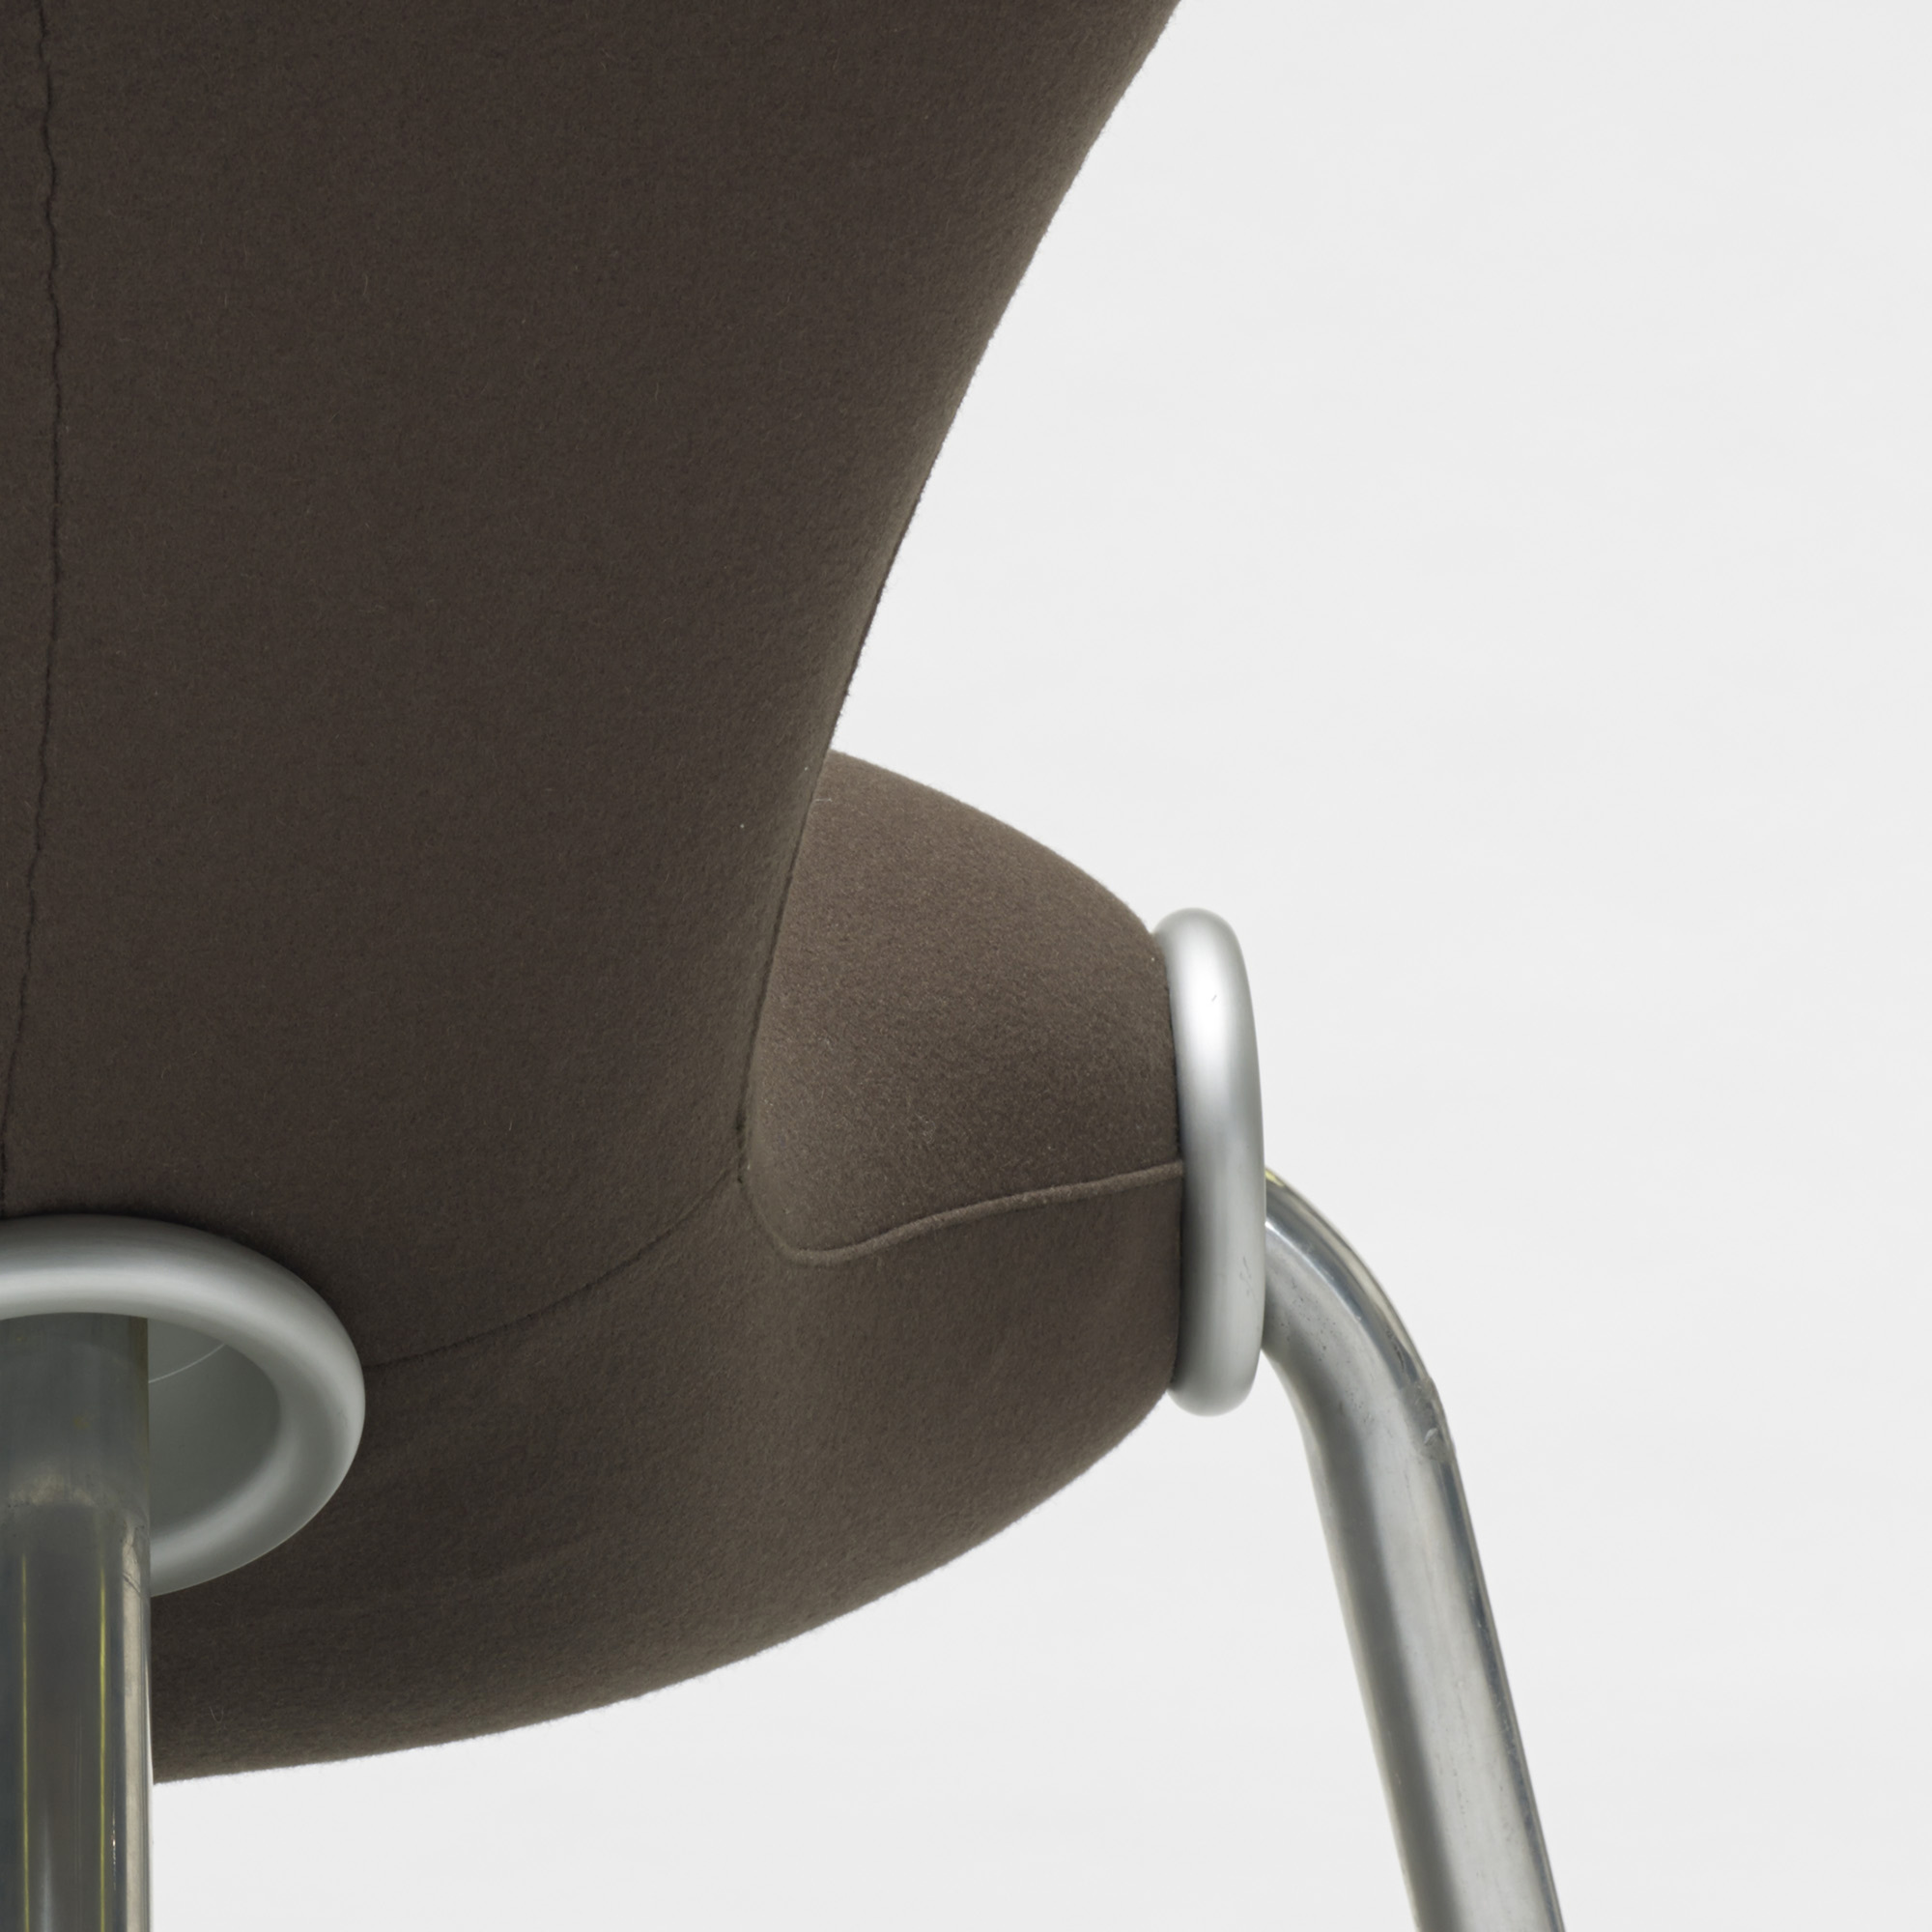 209: Marc Newson / Embryo chair (2 of 2)